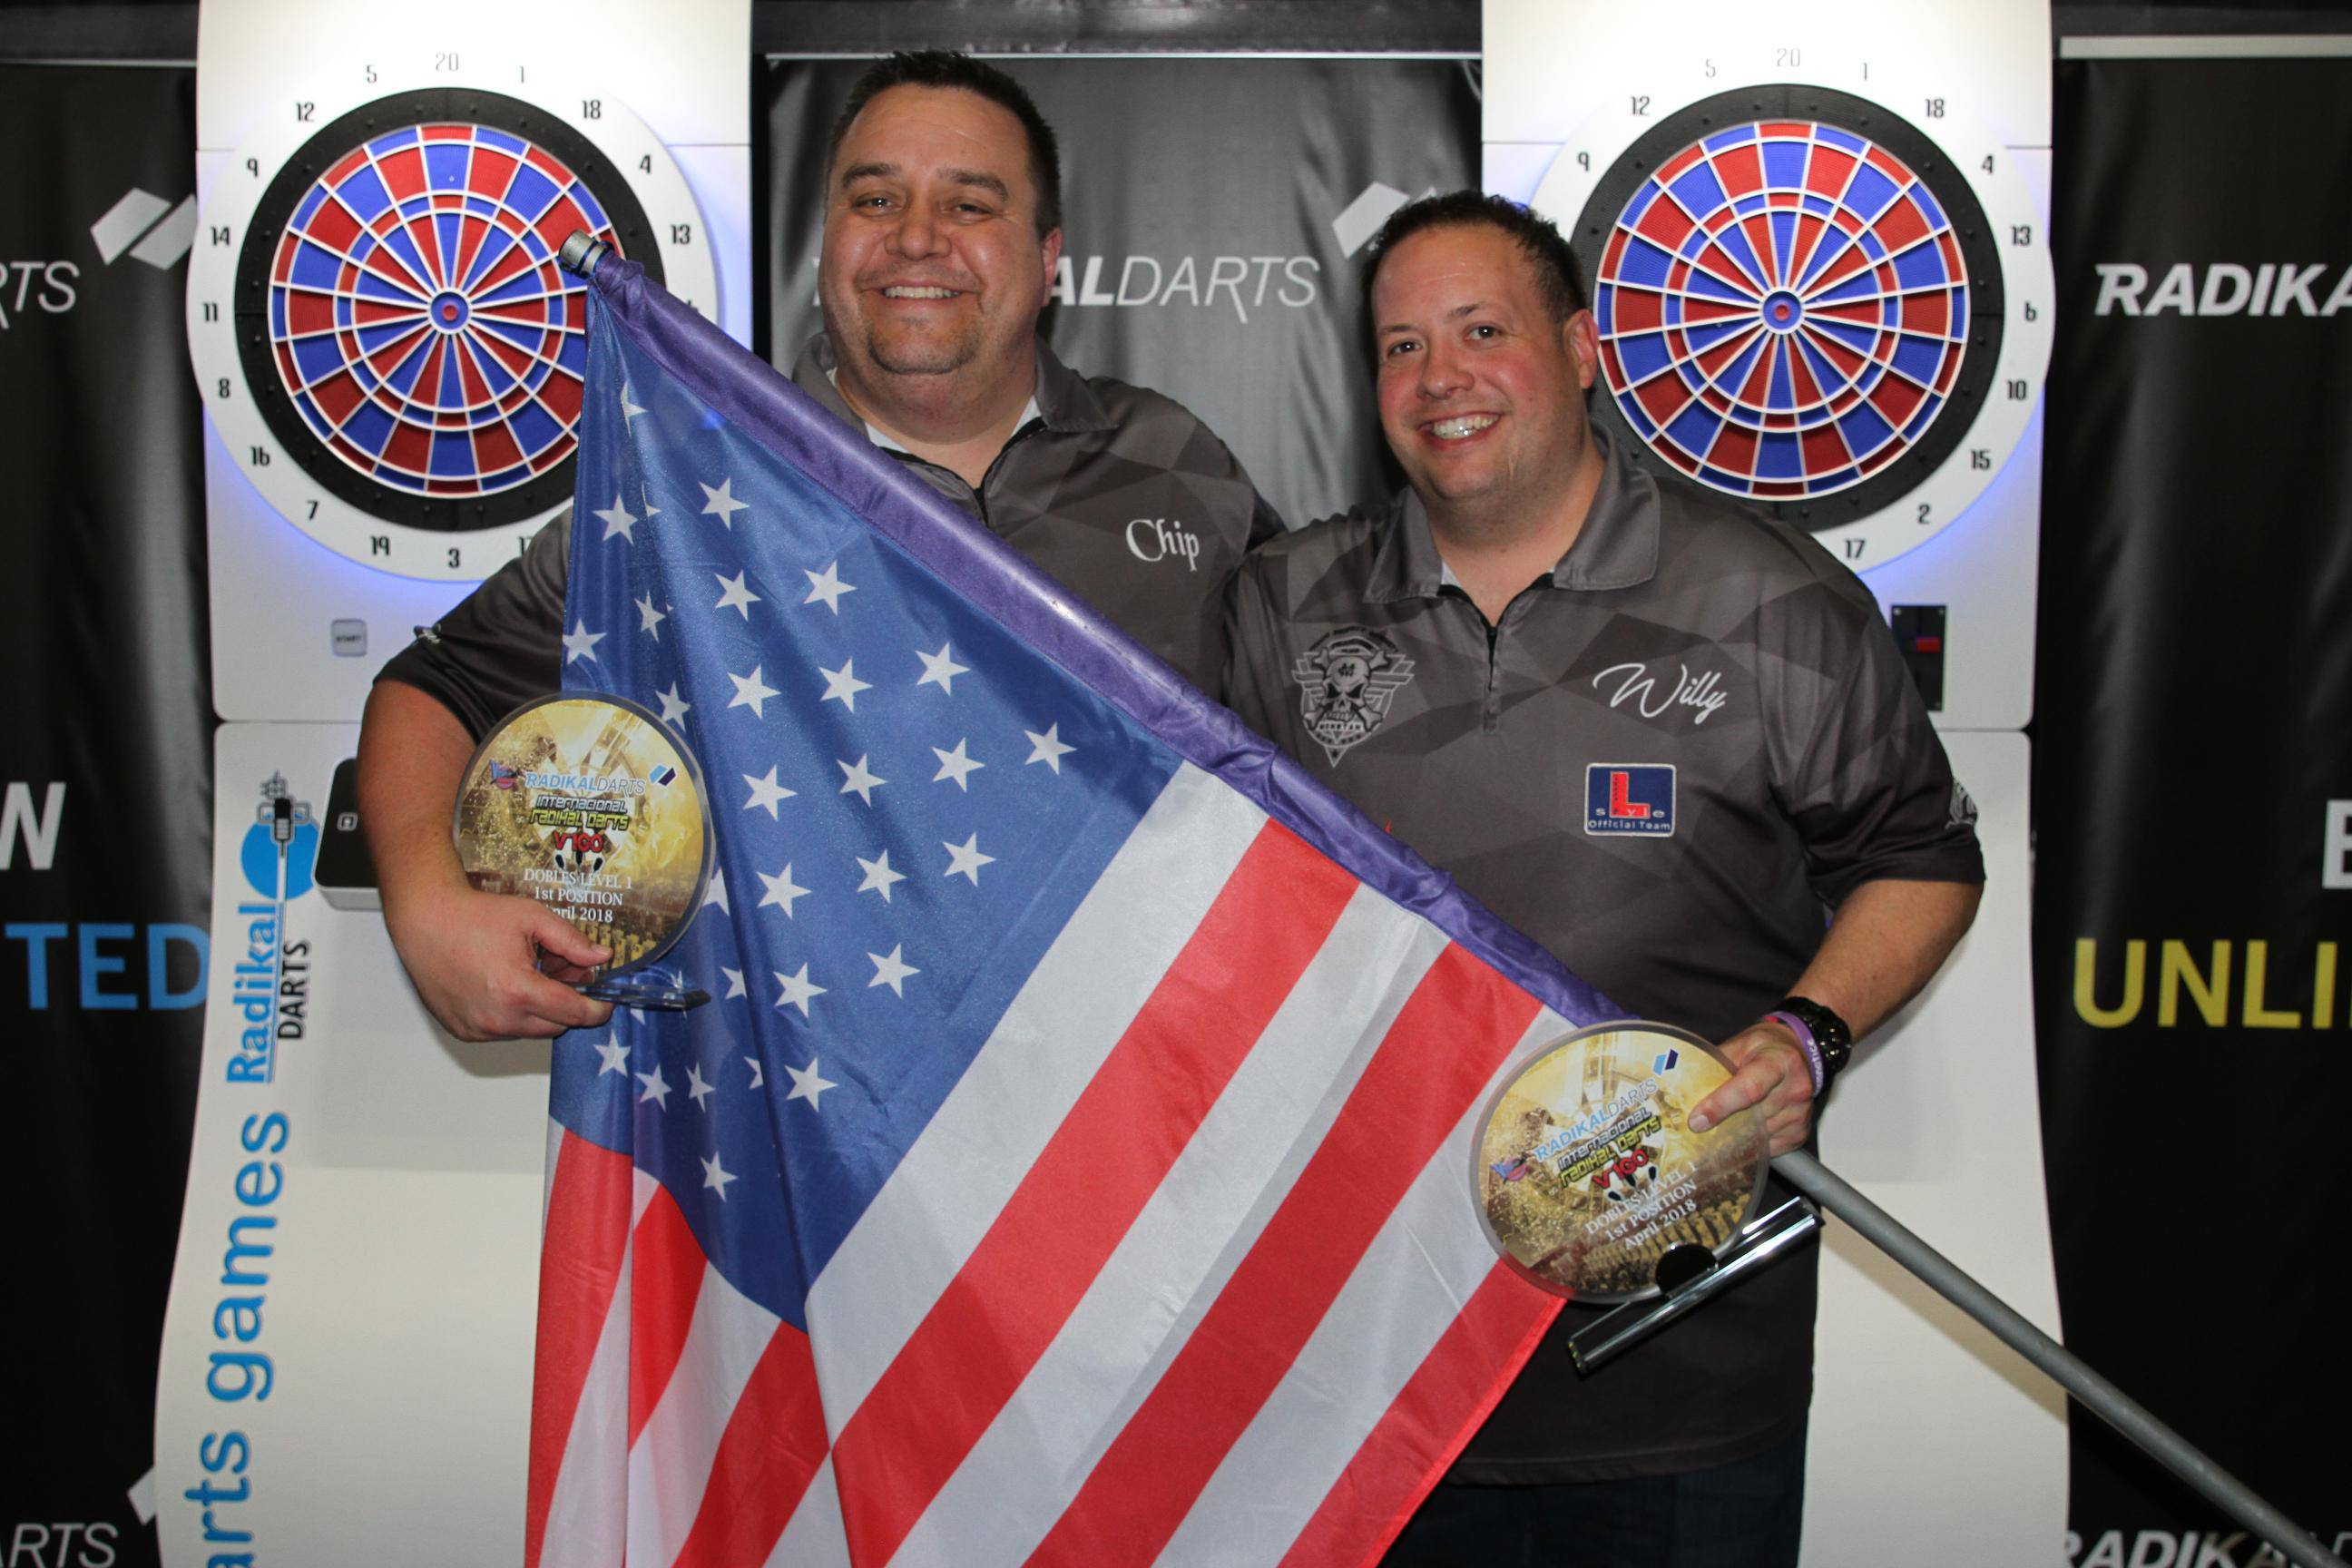 Internacional Radikal Darts 2018 Chip·Willie Campeones Parejas Nivel 1